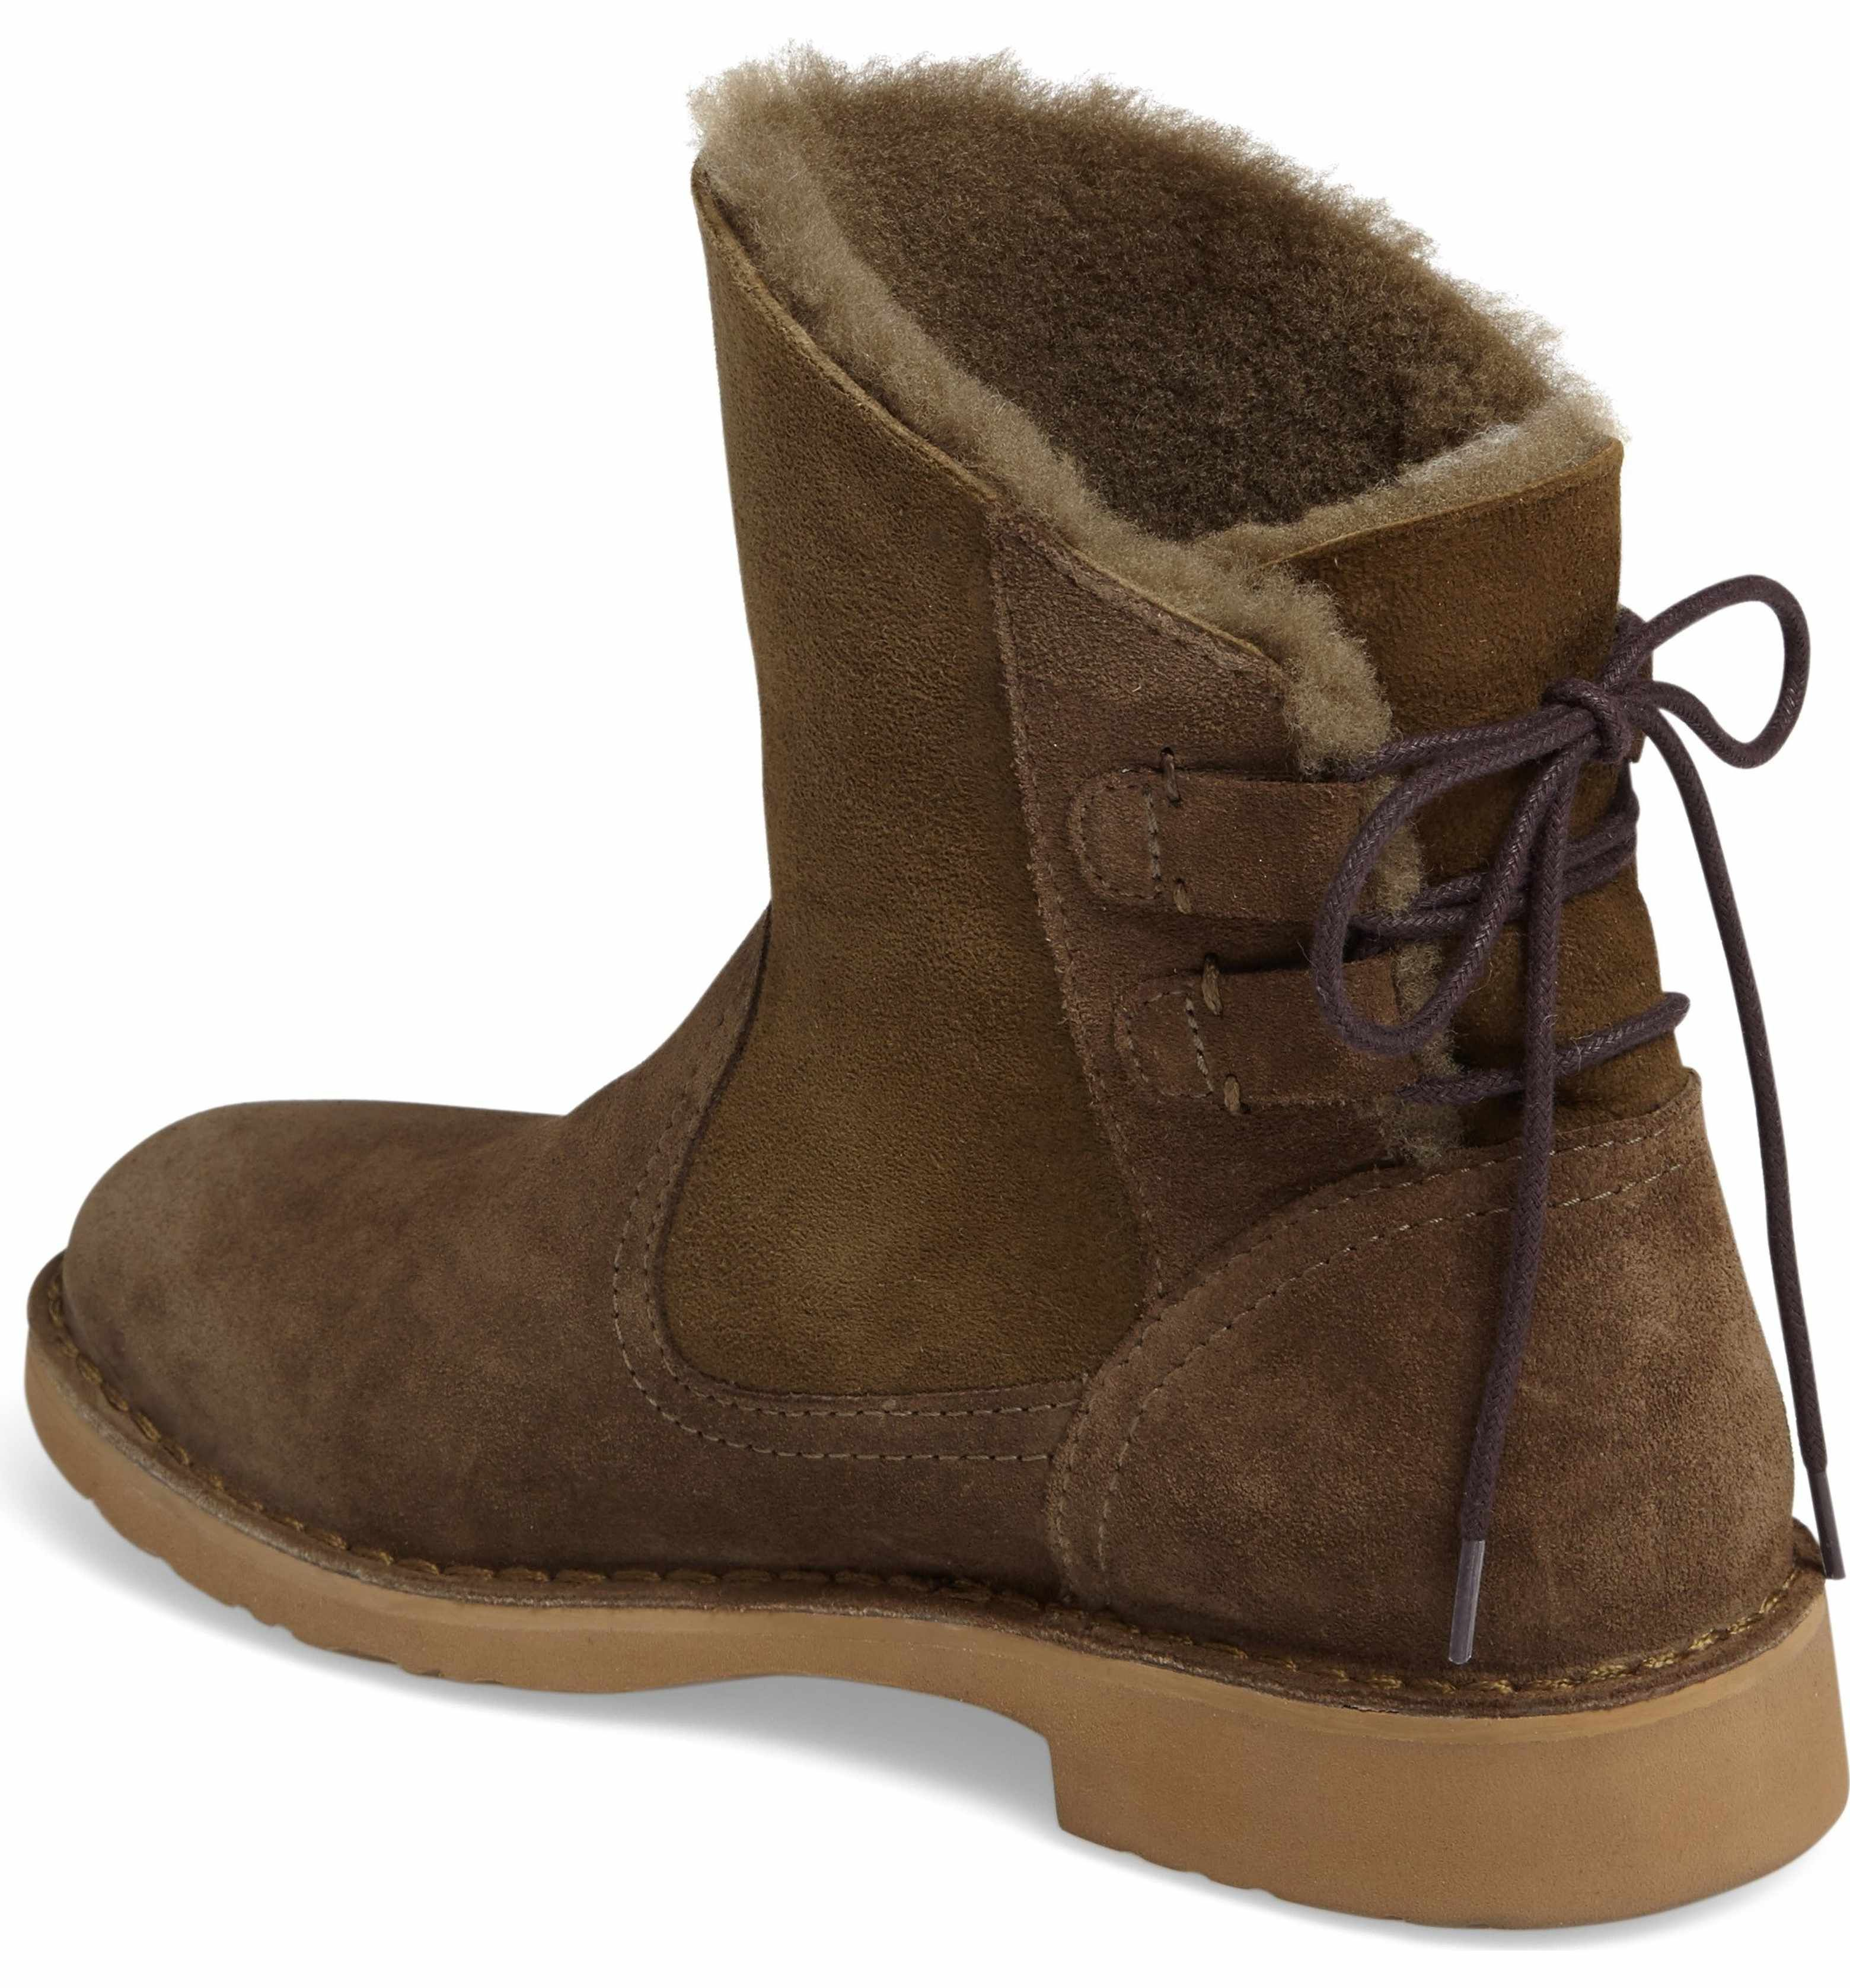 8d9af6f41a6 Main Image - UGG® Naiyah Lace-Back Genuine Shearling Boot (Women ...